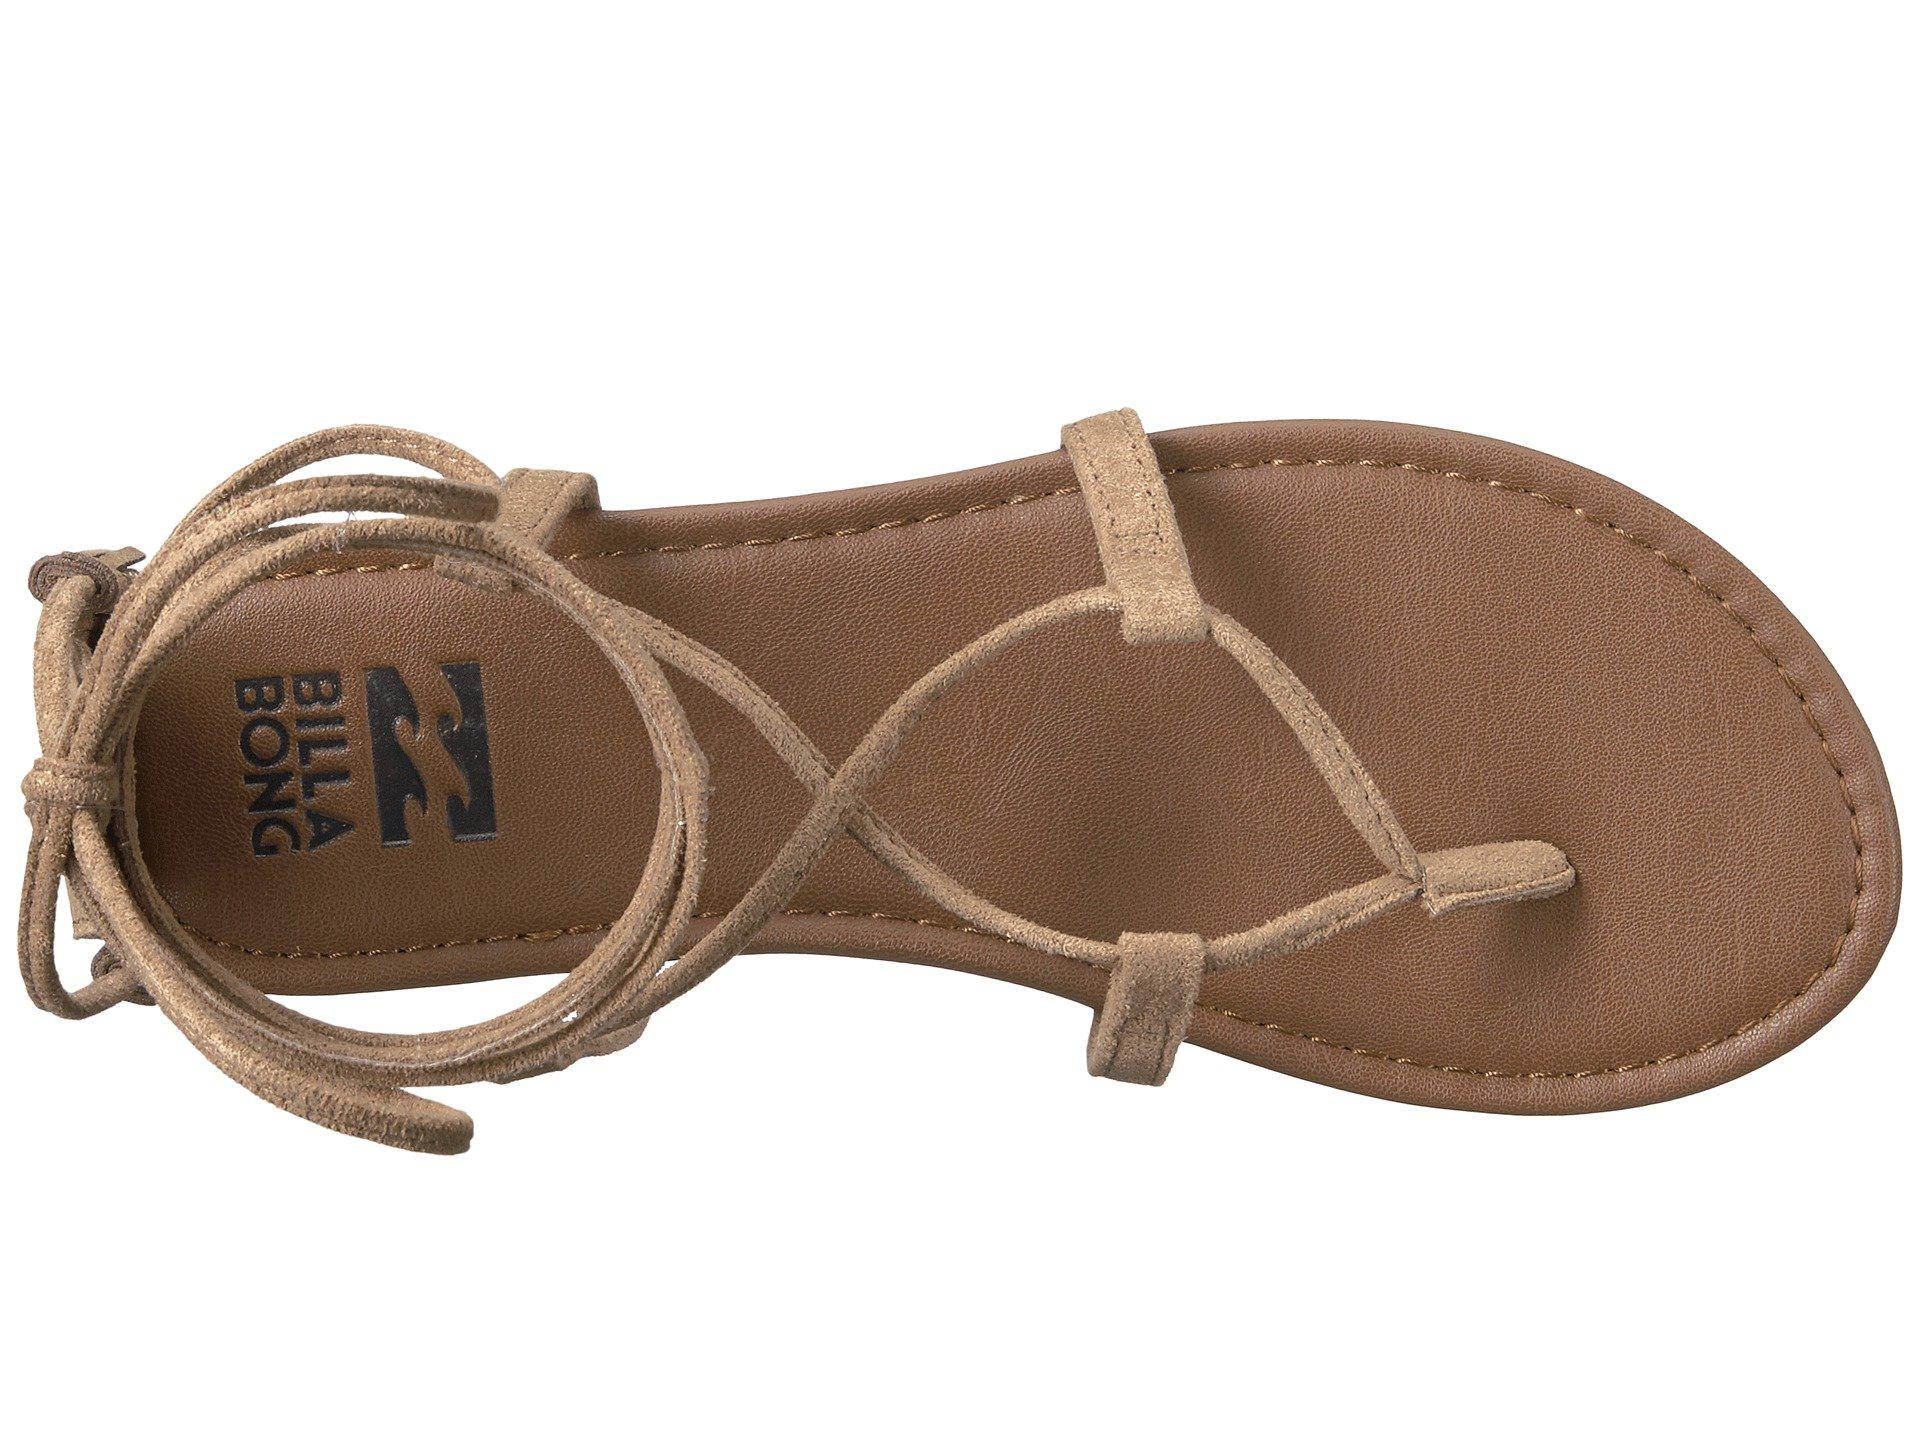 f419a904d98 Lyst - Billabong Around The Sun Sandal in Brown